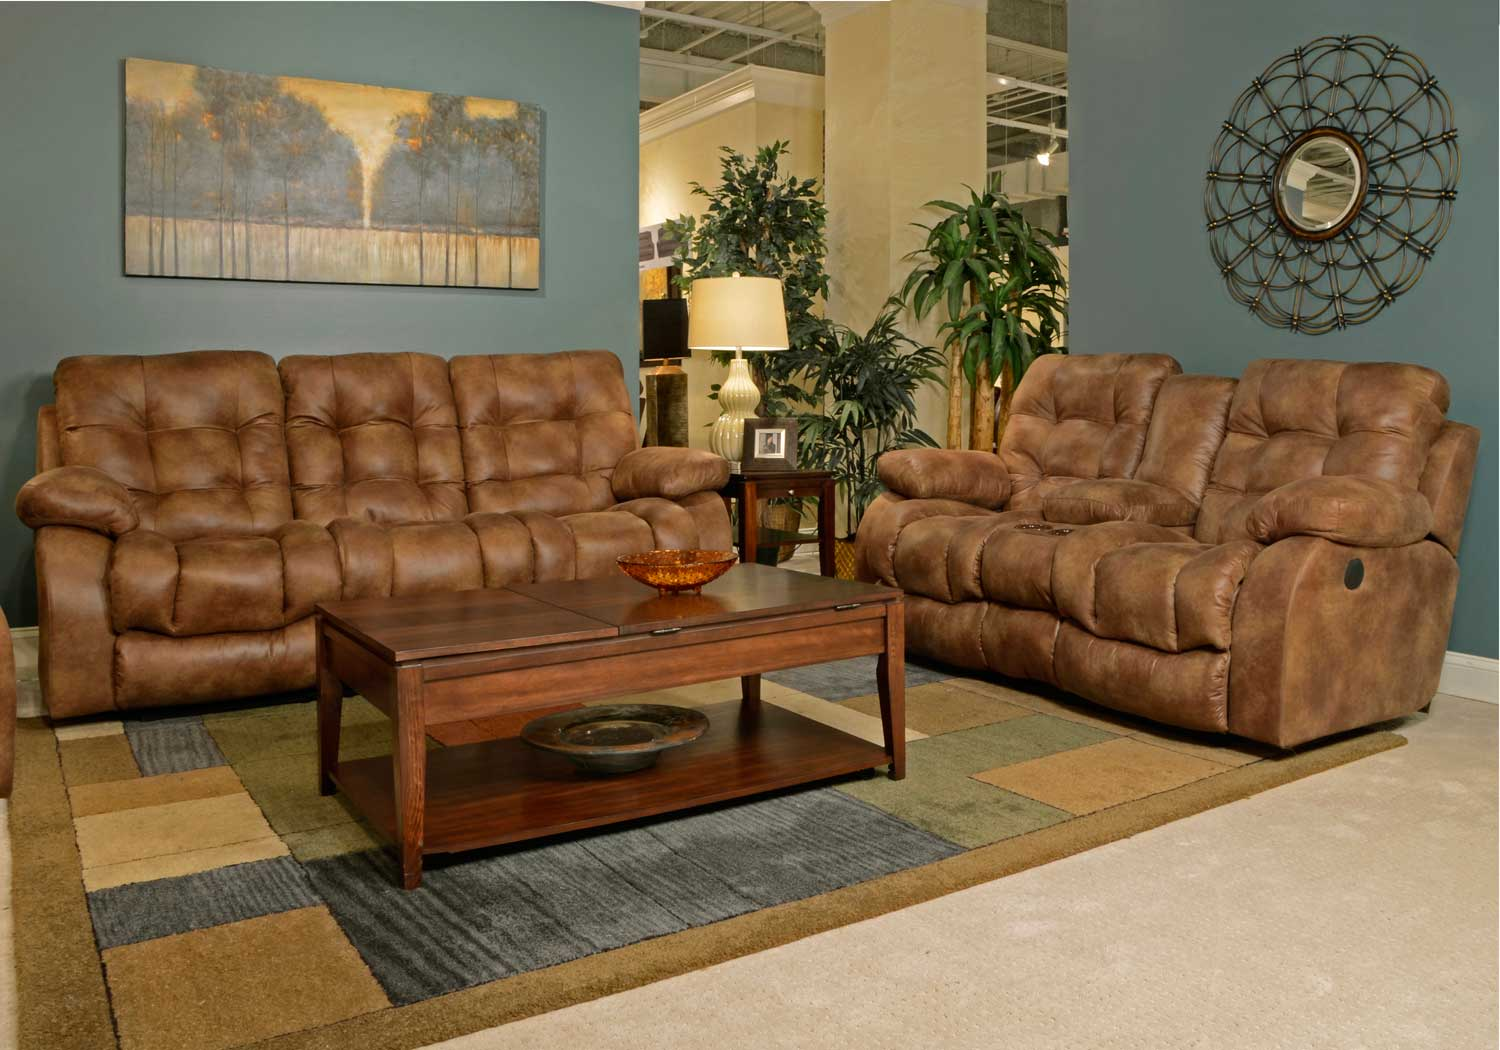 Catnapper watson lay flat reclining sofa set almond cn 1521 sofa set almond at Catnapper loveseat recliner